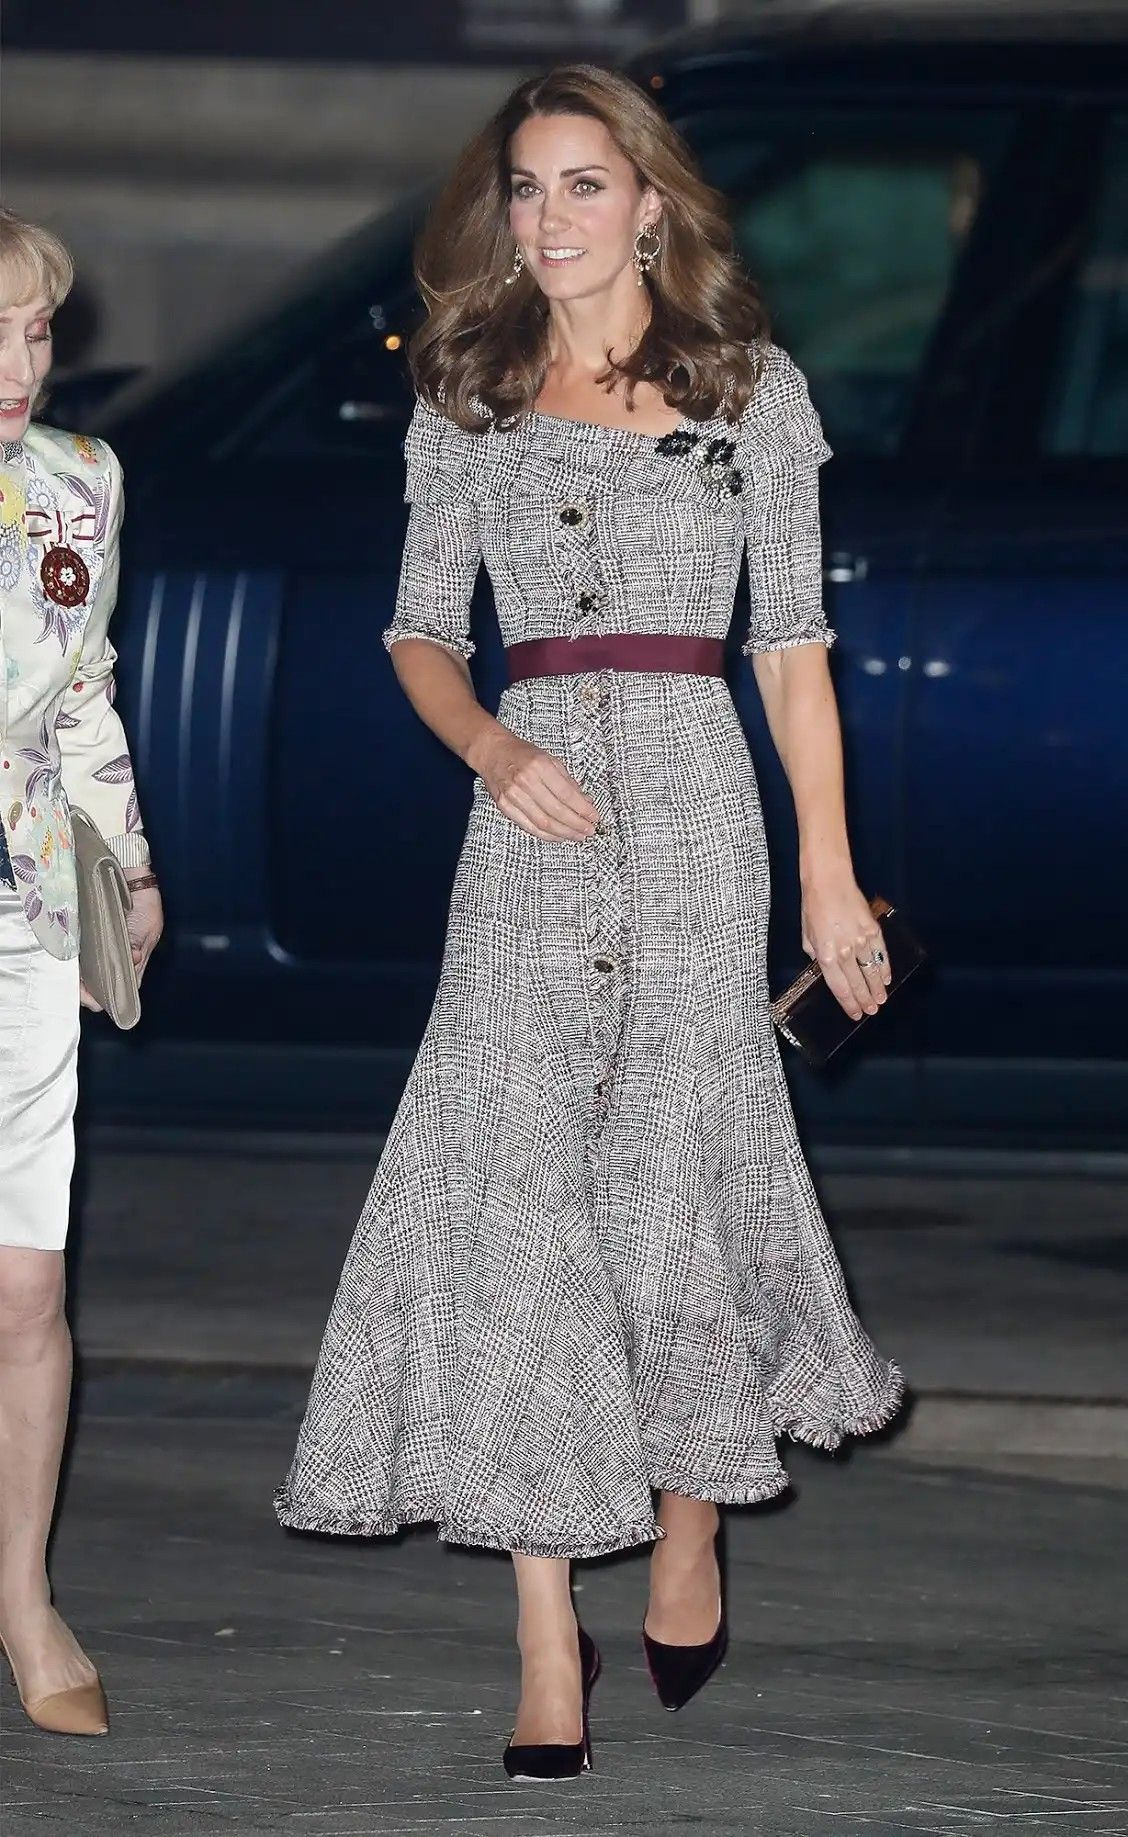 949bfc452b Stunning Duchess of Cambridge 2018 | Lords, Ladies and cute Royal ...